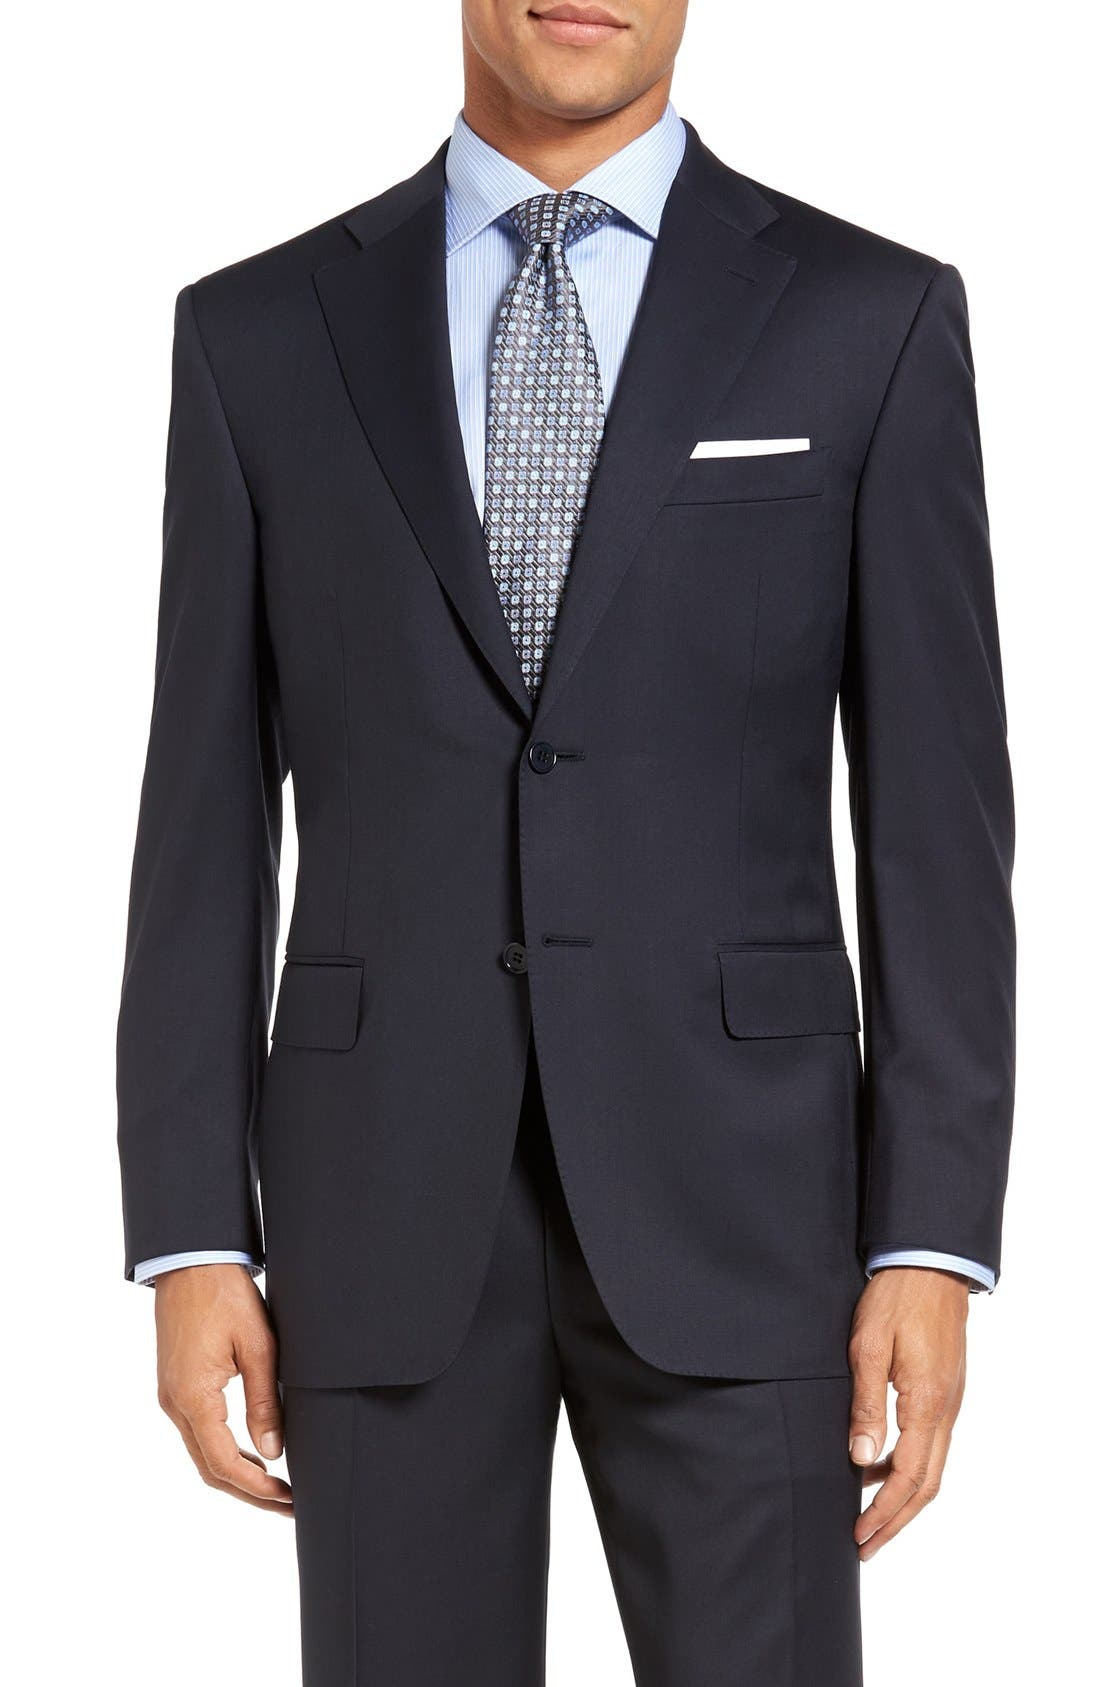 CANALI, Classic Fit Solid Wool Suit, Alternate thumbnail 5, color, NAVY